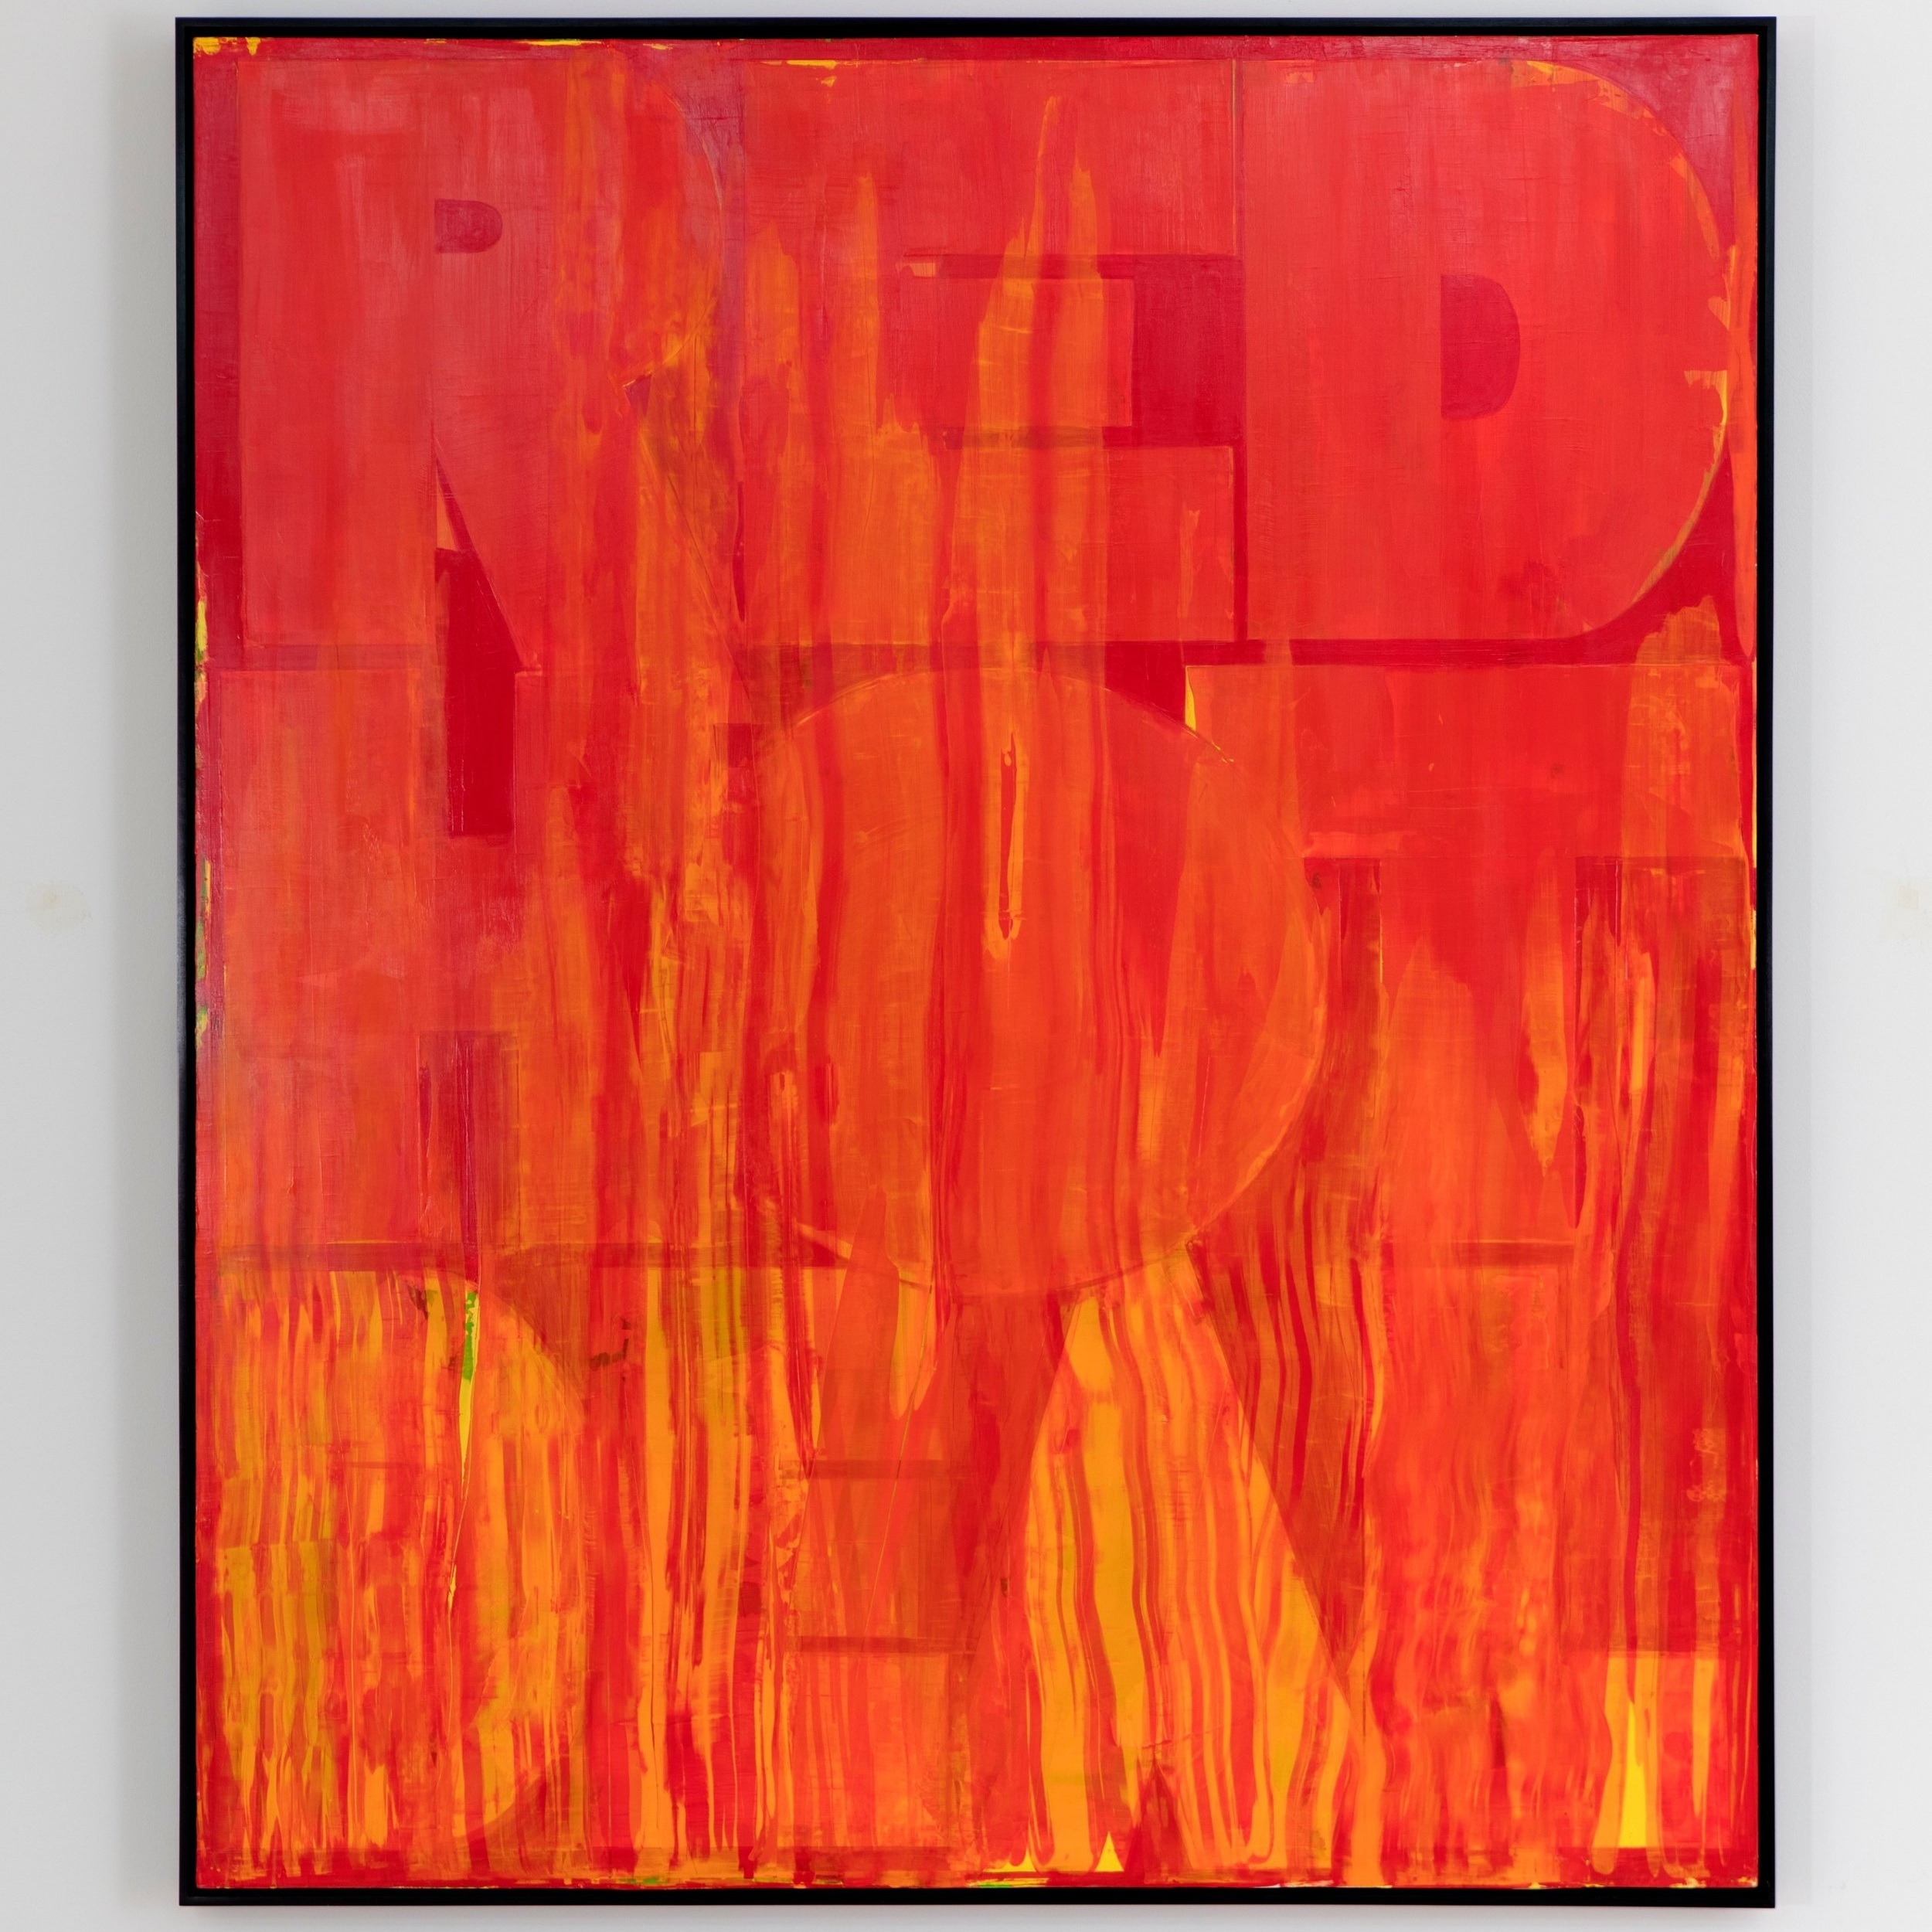 Image of  Red Hot Deal , 2012 by Kerry James Marshall Exhibited by Jack Shainman Gallery Basel Galleries | 2.1 | S25